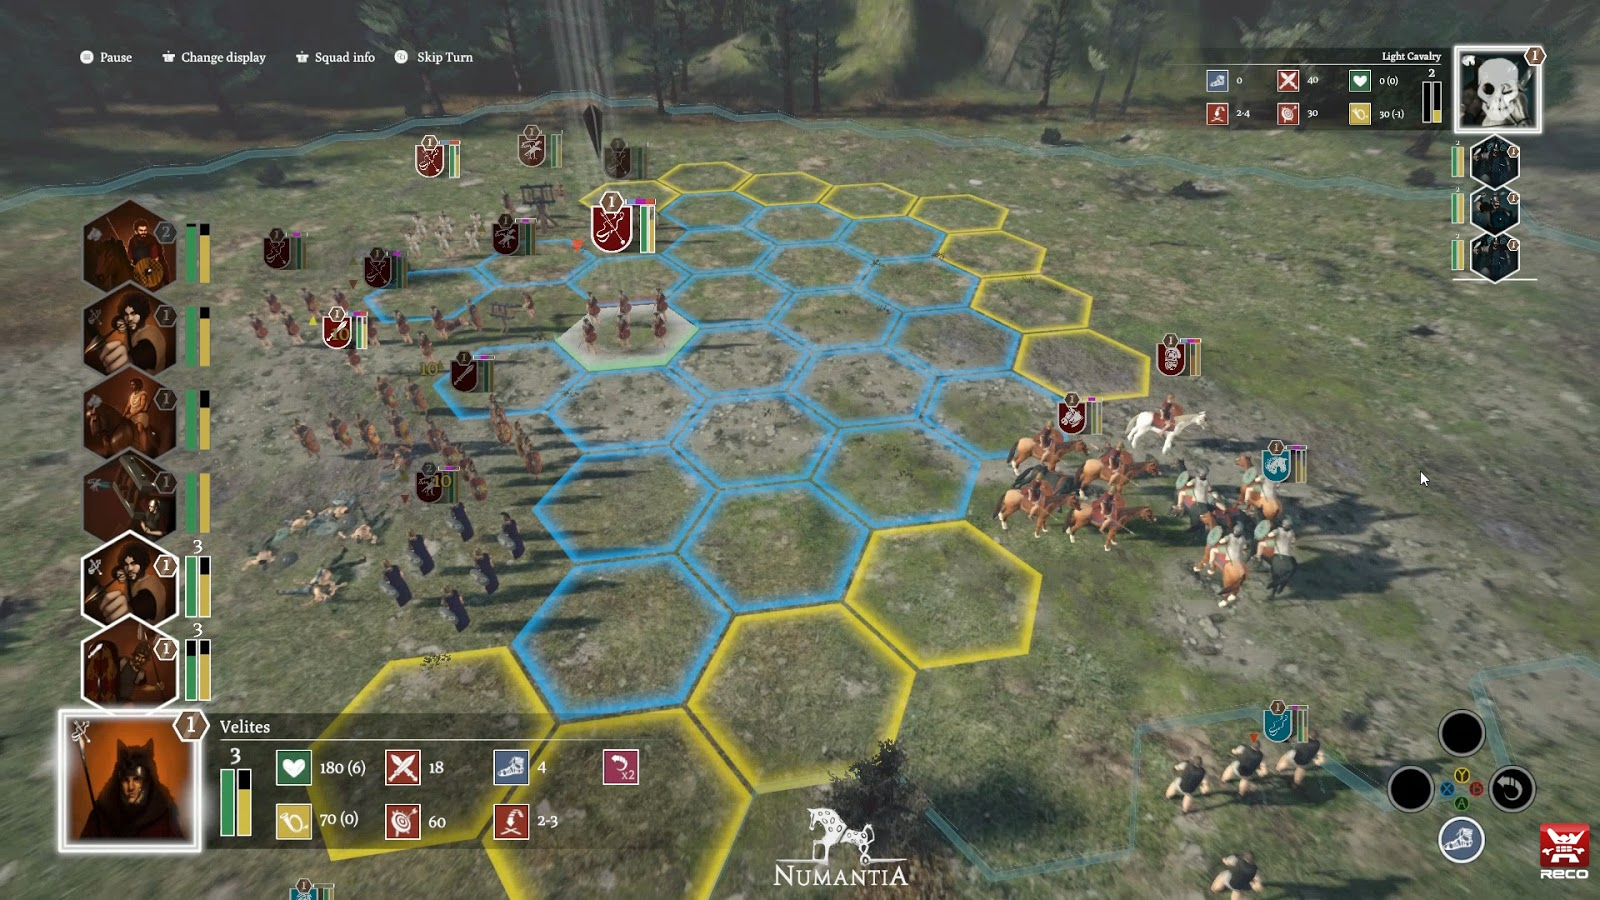 Review Numantia Chess On The Battlefield Gamedev Indiegame Games Freezer Retrogaming